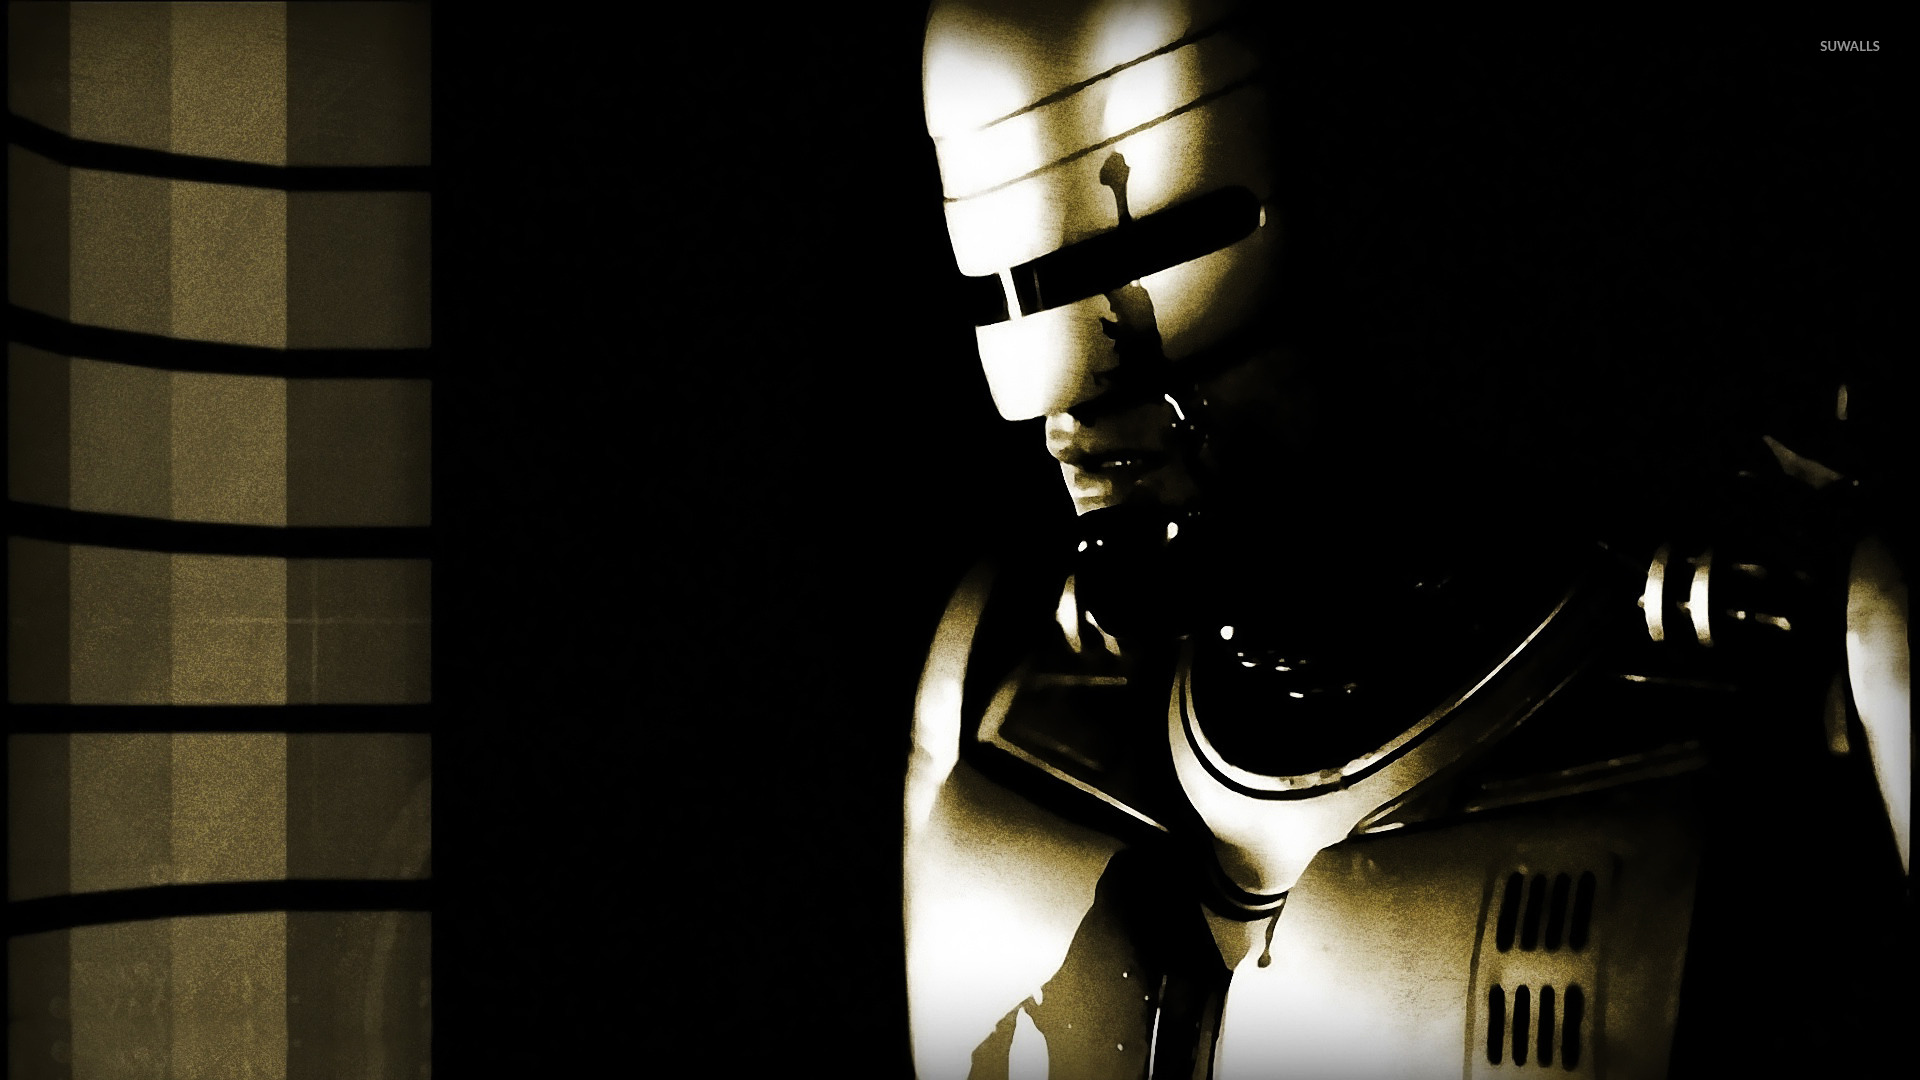 robocop [4] wallpaper - movie wallpapers - #26189